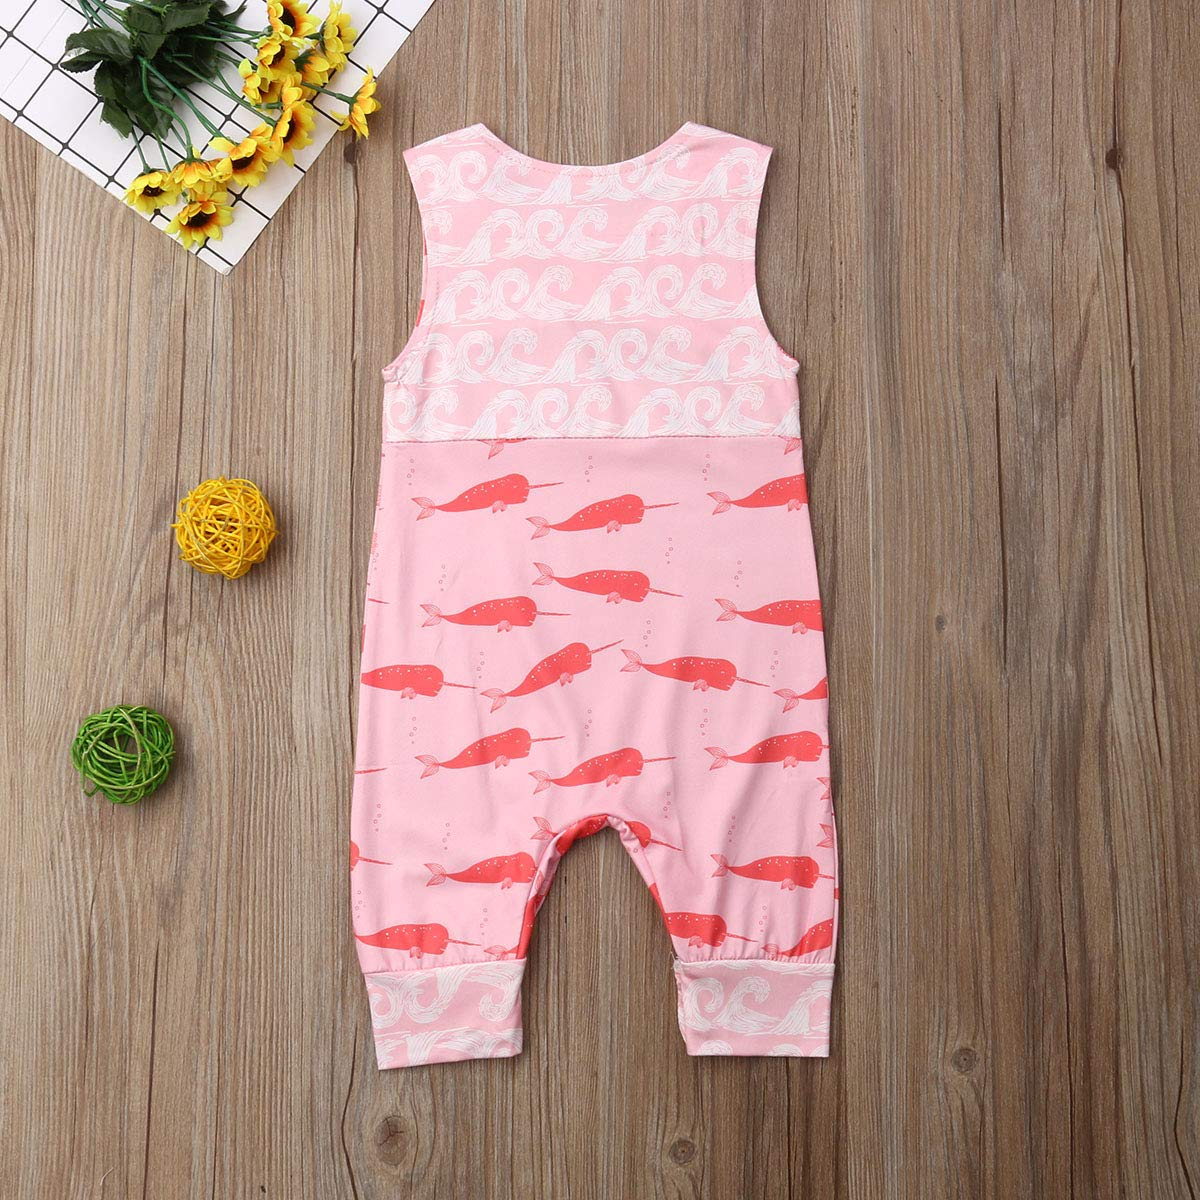 Newborn Girl Boy Unisex Baby Cute Floral Summer Sleeveless One Piece Outfit Clothes,Footless,Sleep /& Play